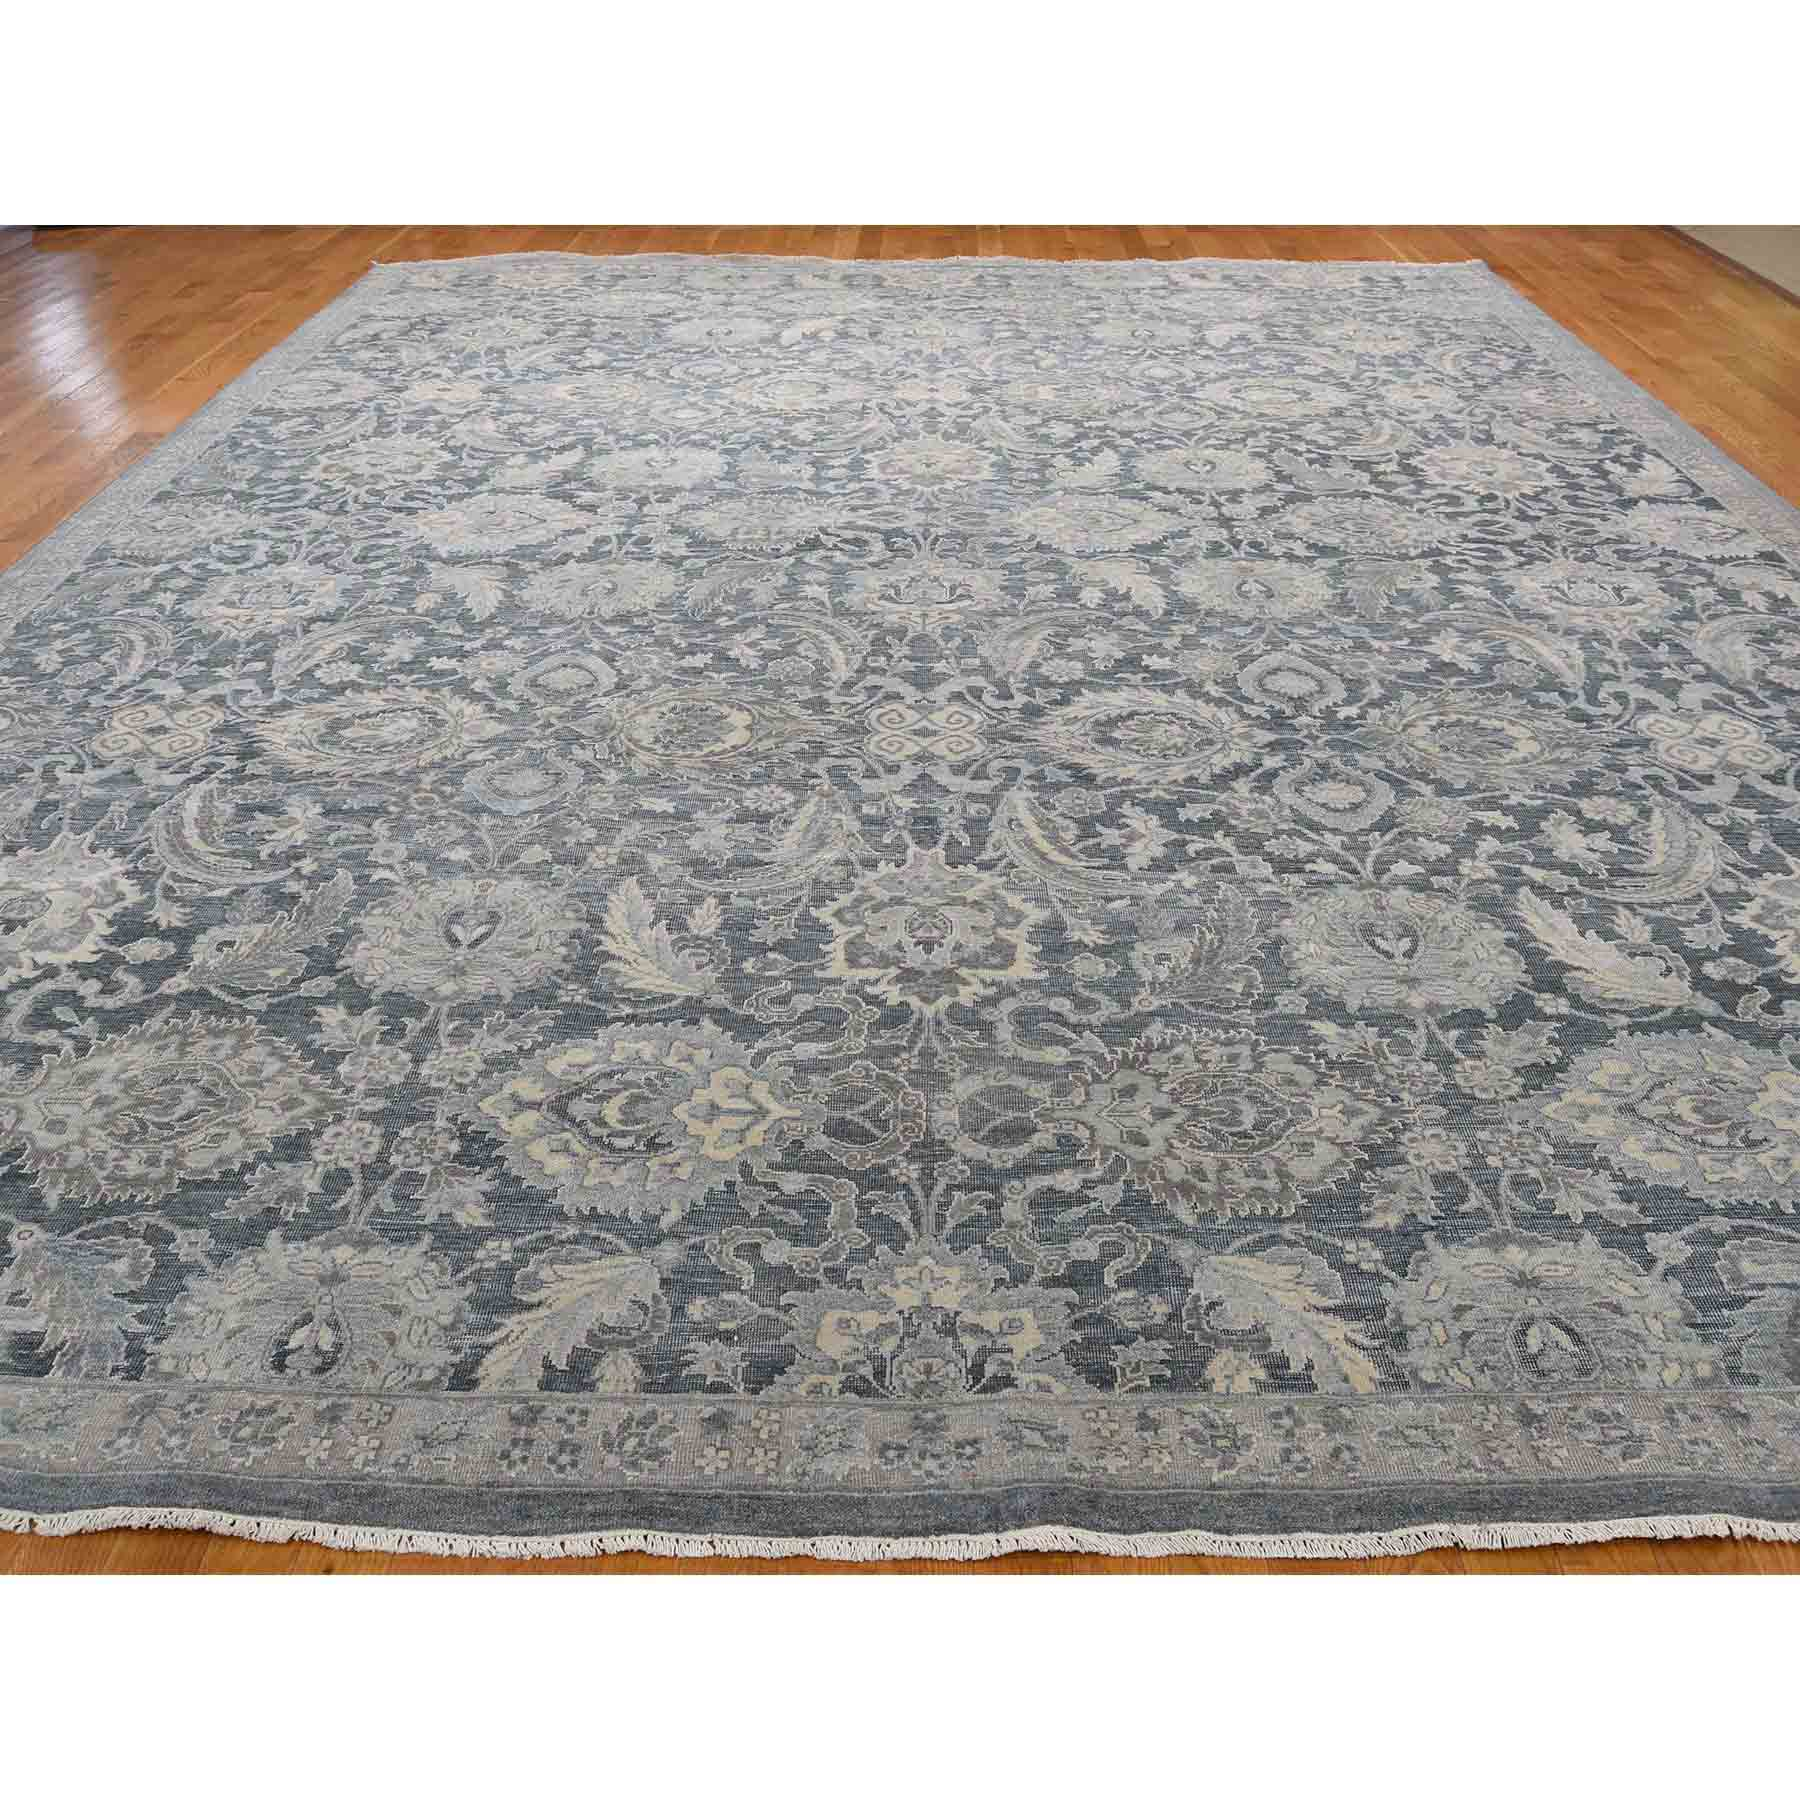 Oushak-And-Peshawar-Hand-Knotted-Rug-206545